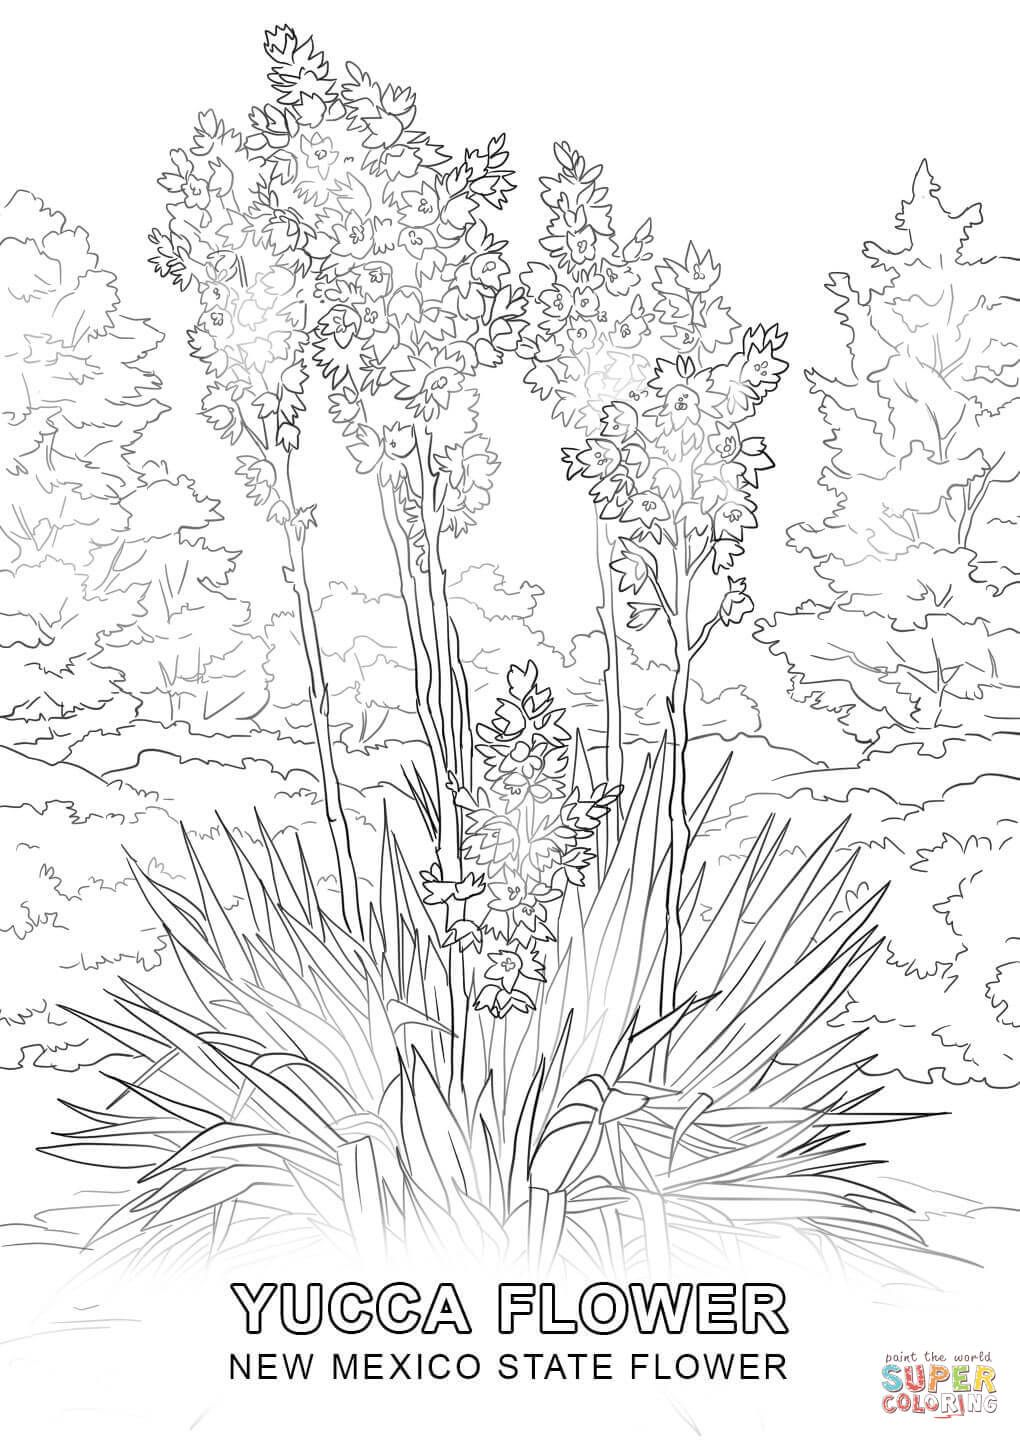 Explore Flower Coloring Pages Girls Club And More